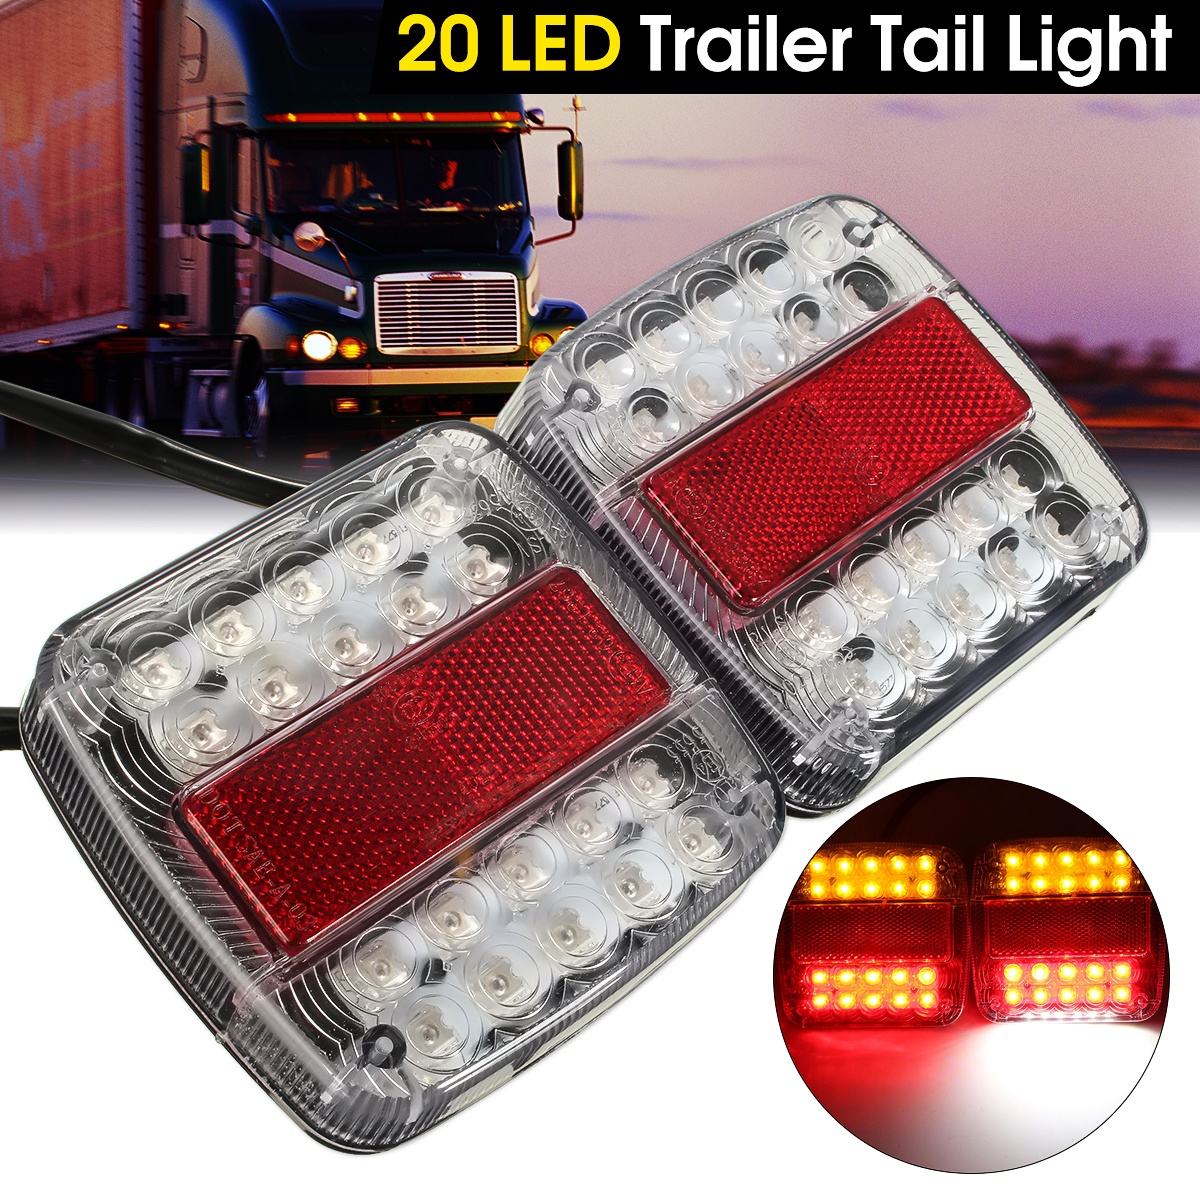 2x 12V 26 LED Taillight Turn Signal Light Rear Brake Stop Light Number License Plate Lamp For Car Truck Trailer E-Marked объявления стенд